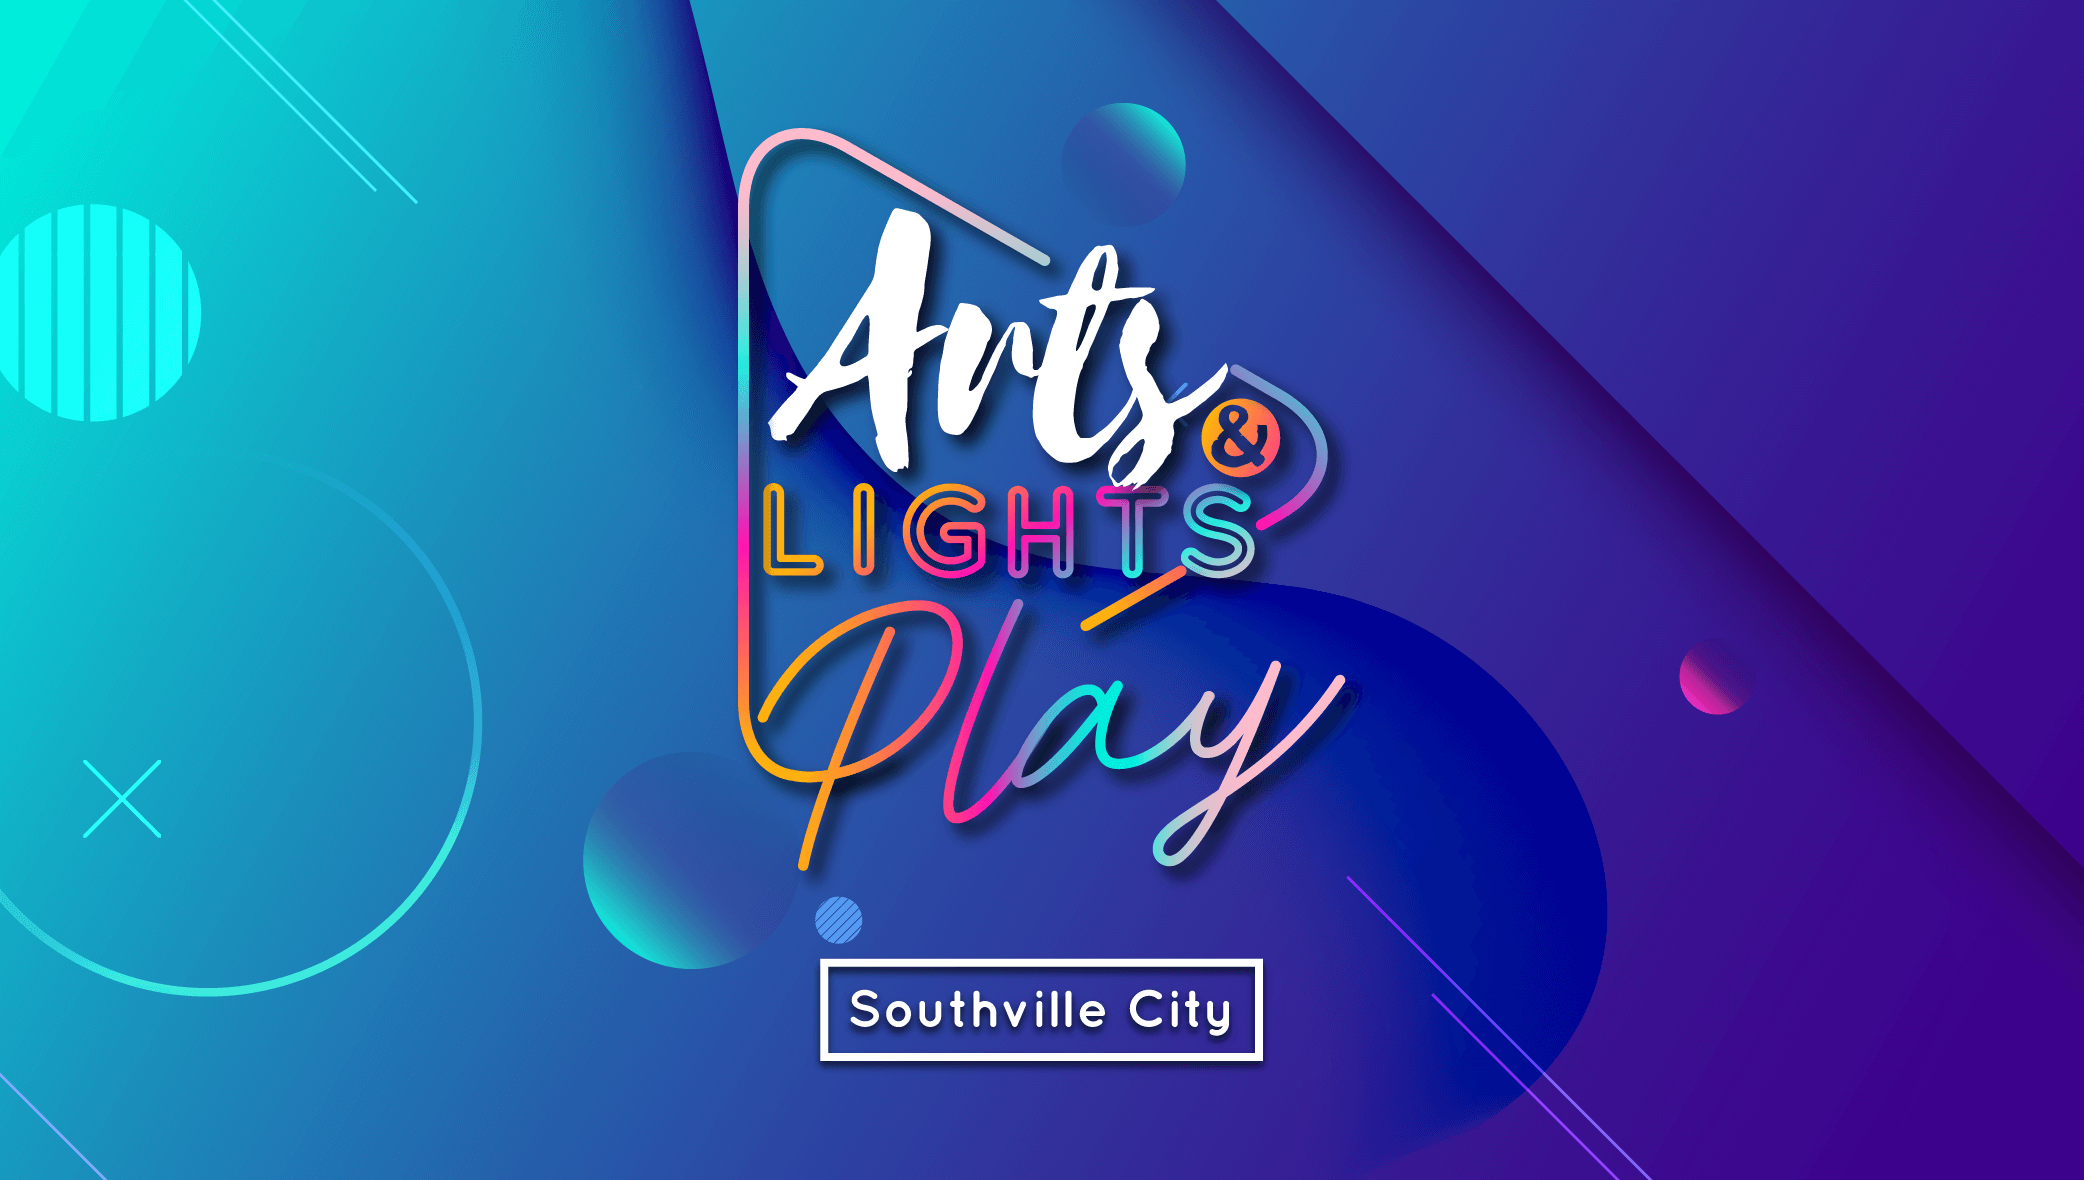 M Privilege Member Day to Arts & Lights Play @ Southville City